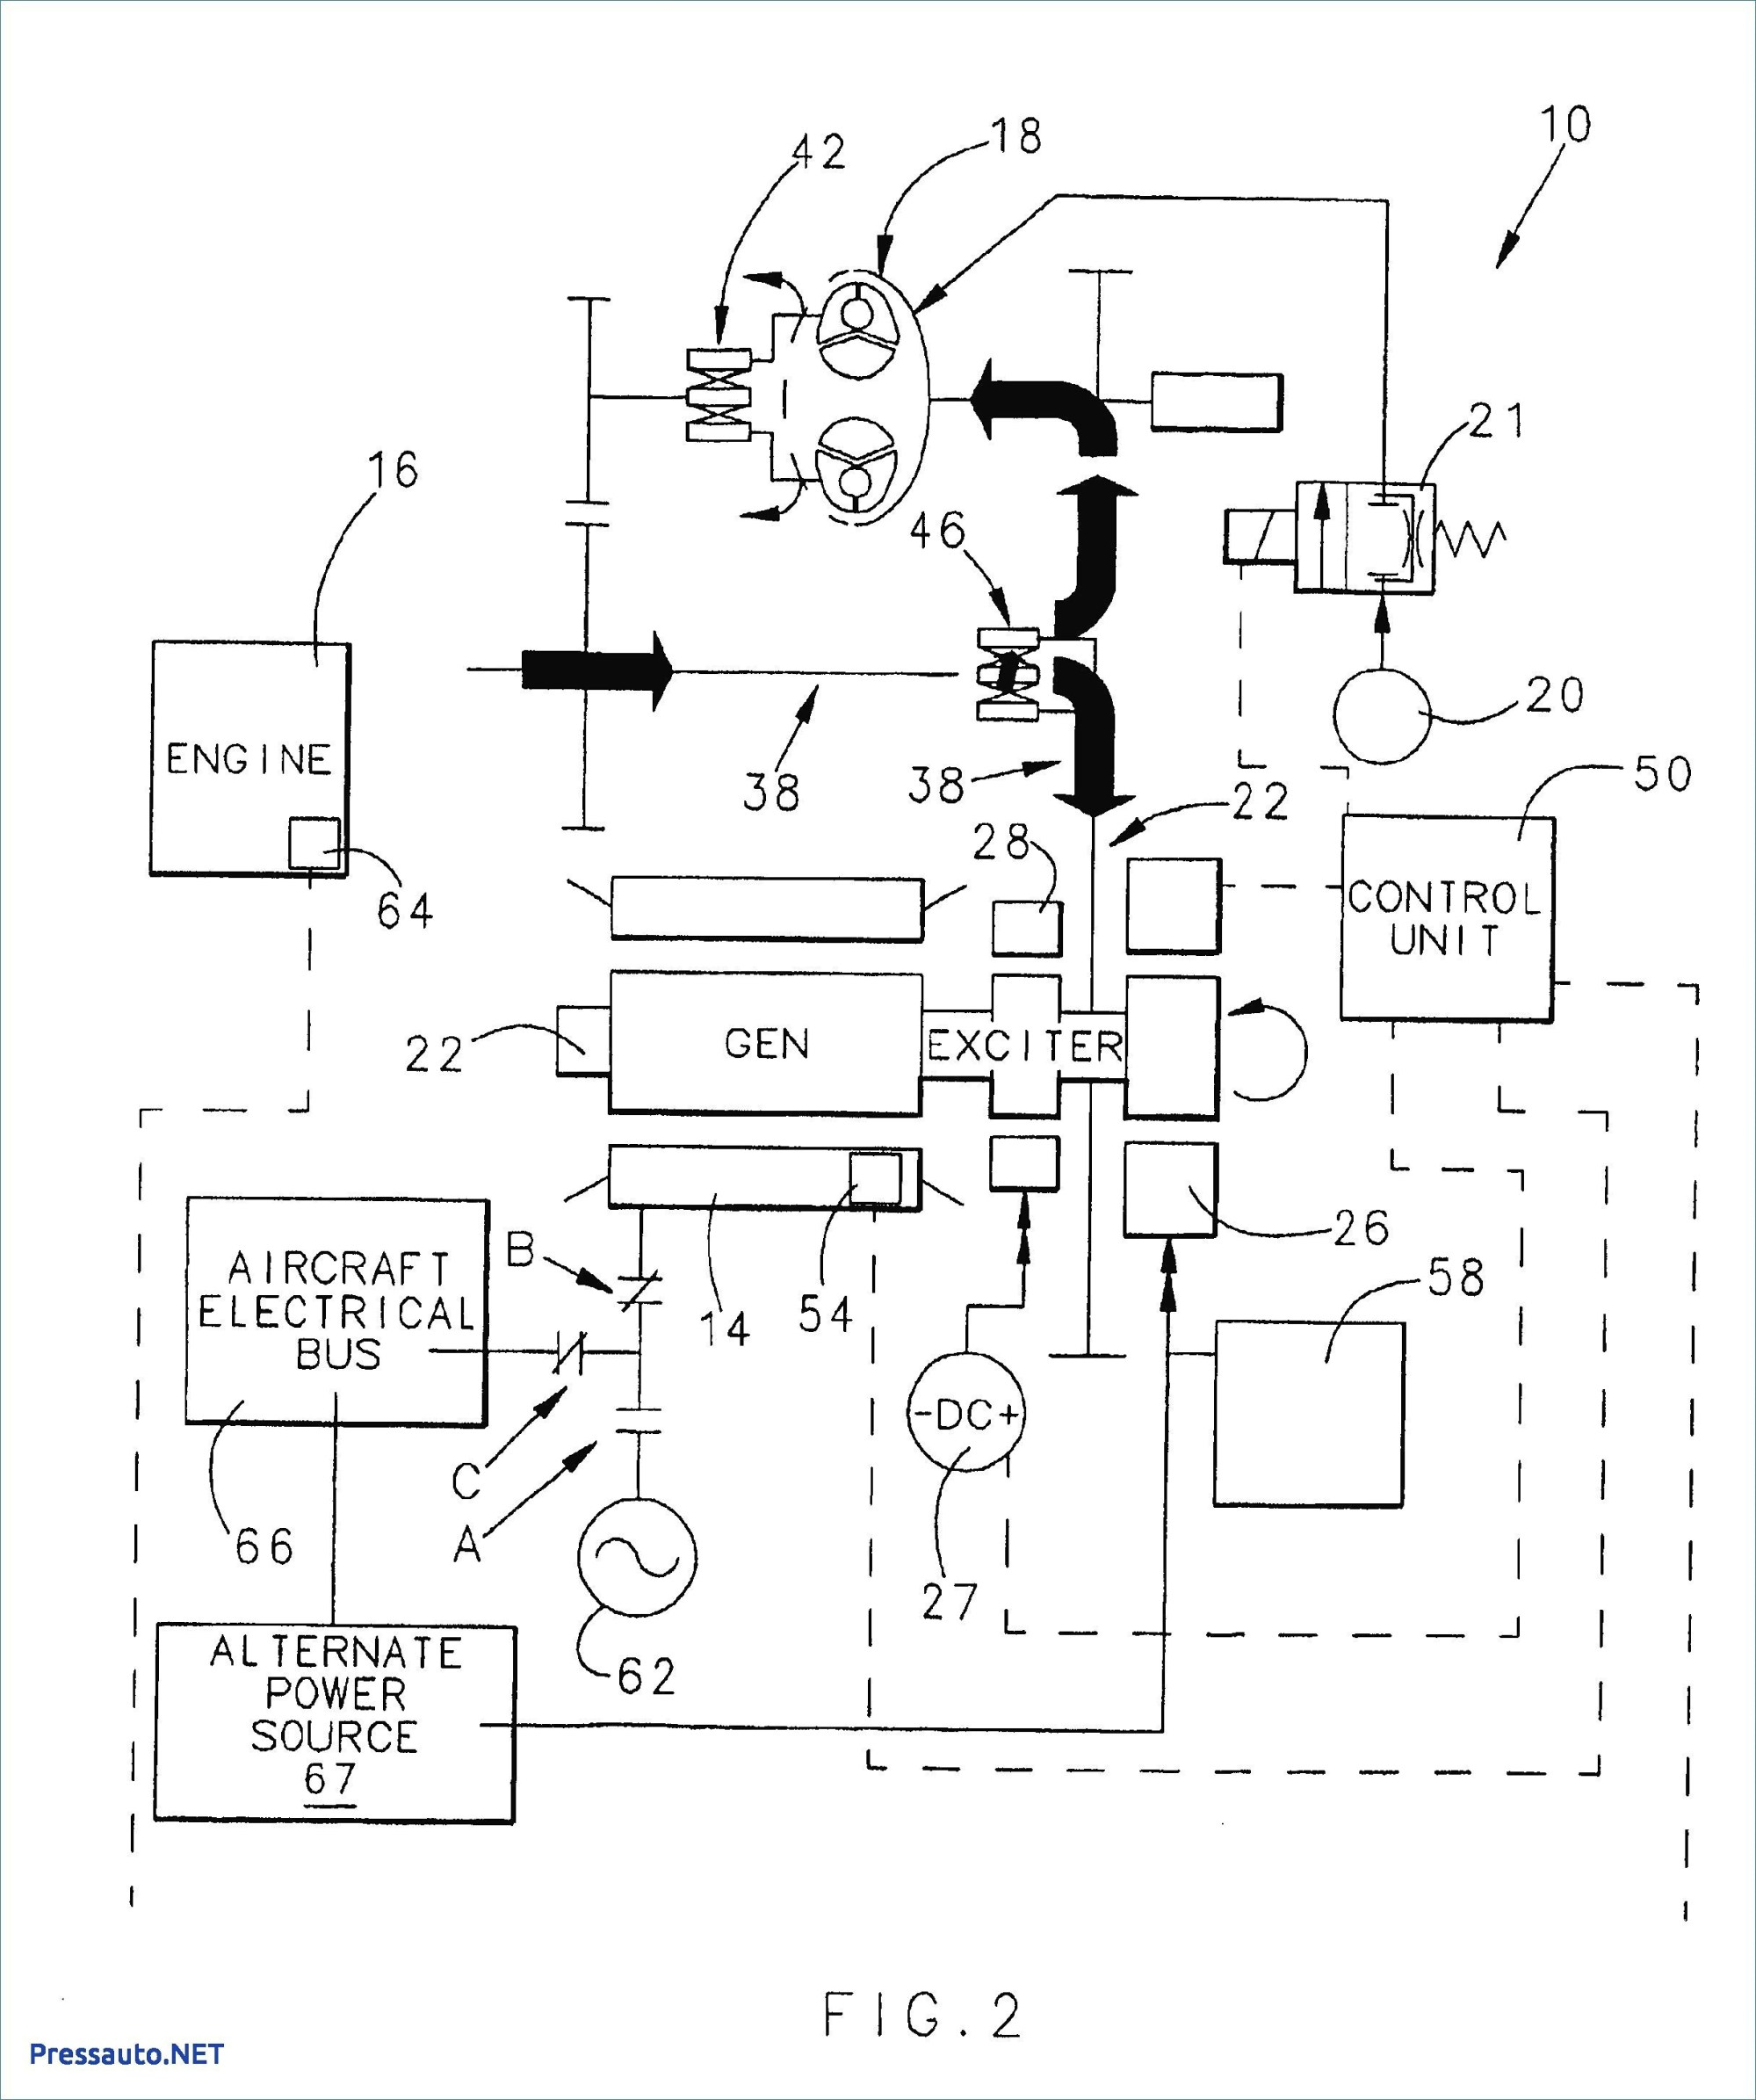 hight resolution of 2000 mitsubishi montero sport engine diagram simple wiring diagram rh 14 mara cujas de 2003 mitsubishi